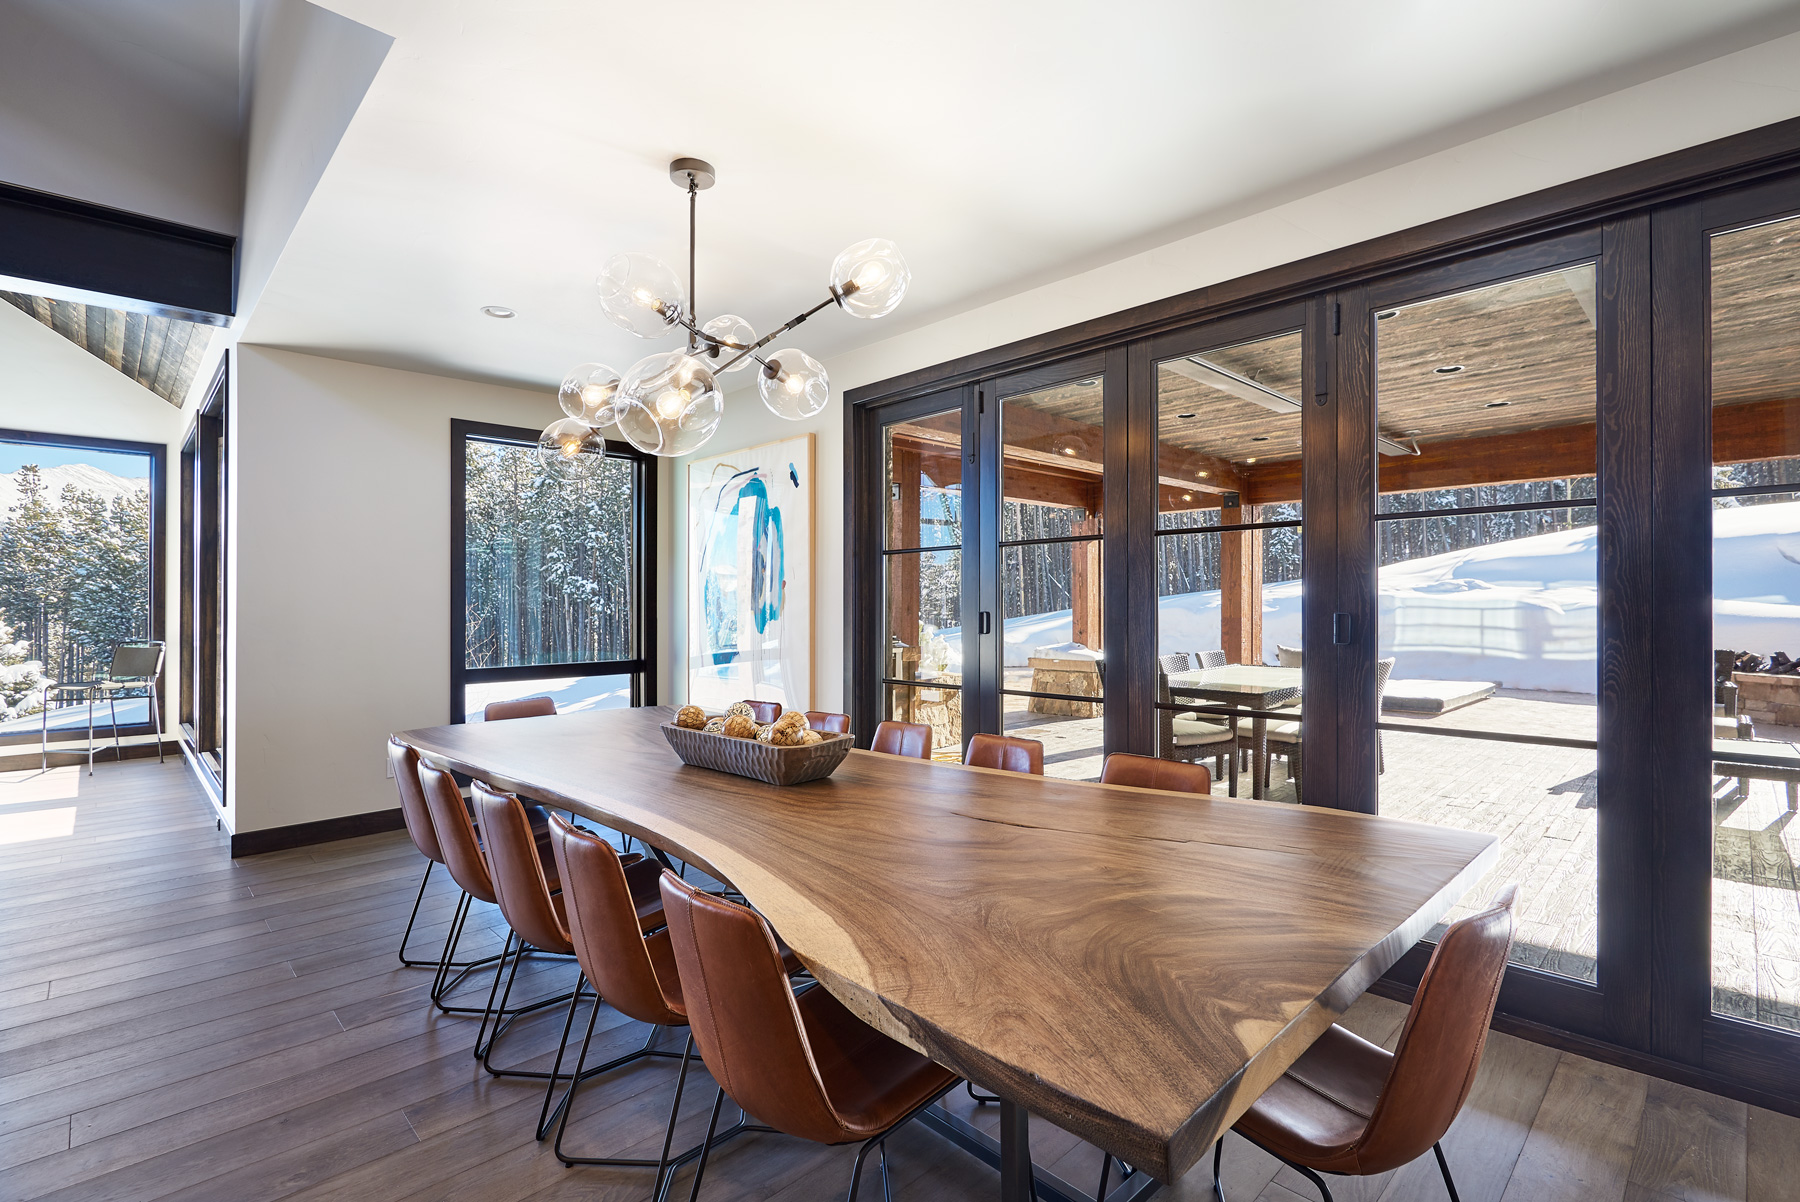 Dining room wood table montain seating 12 chandelier.jpg